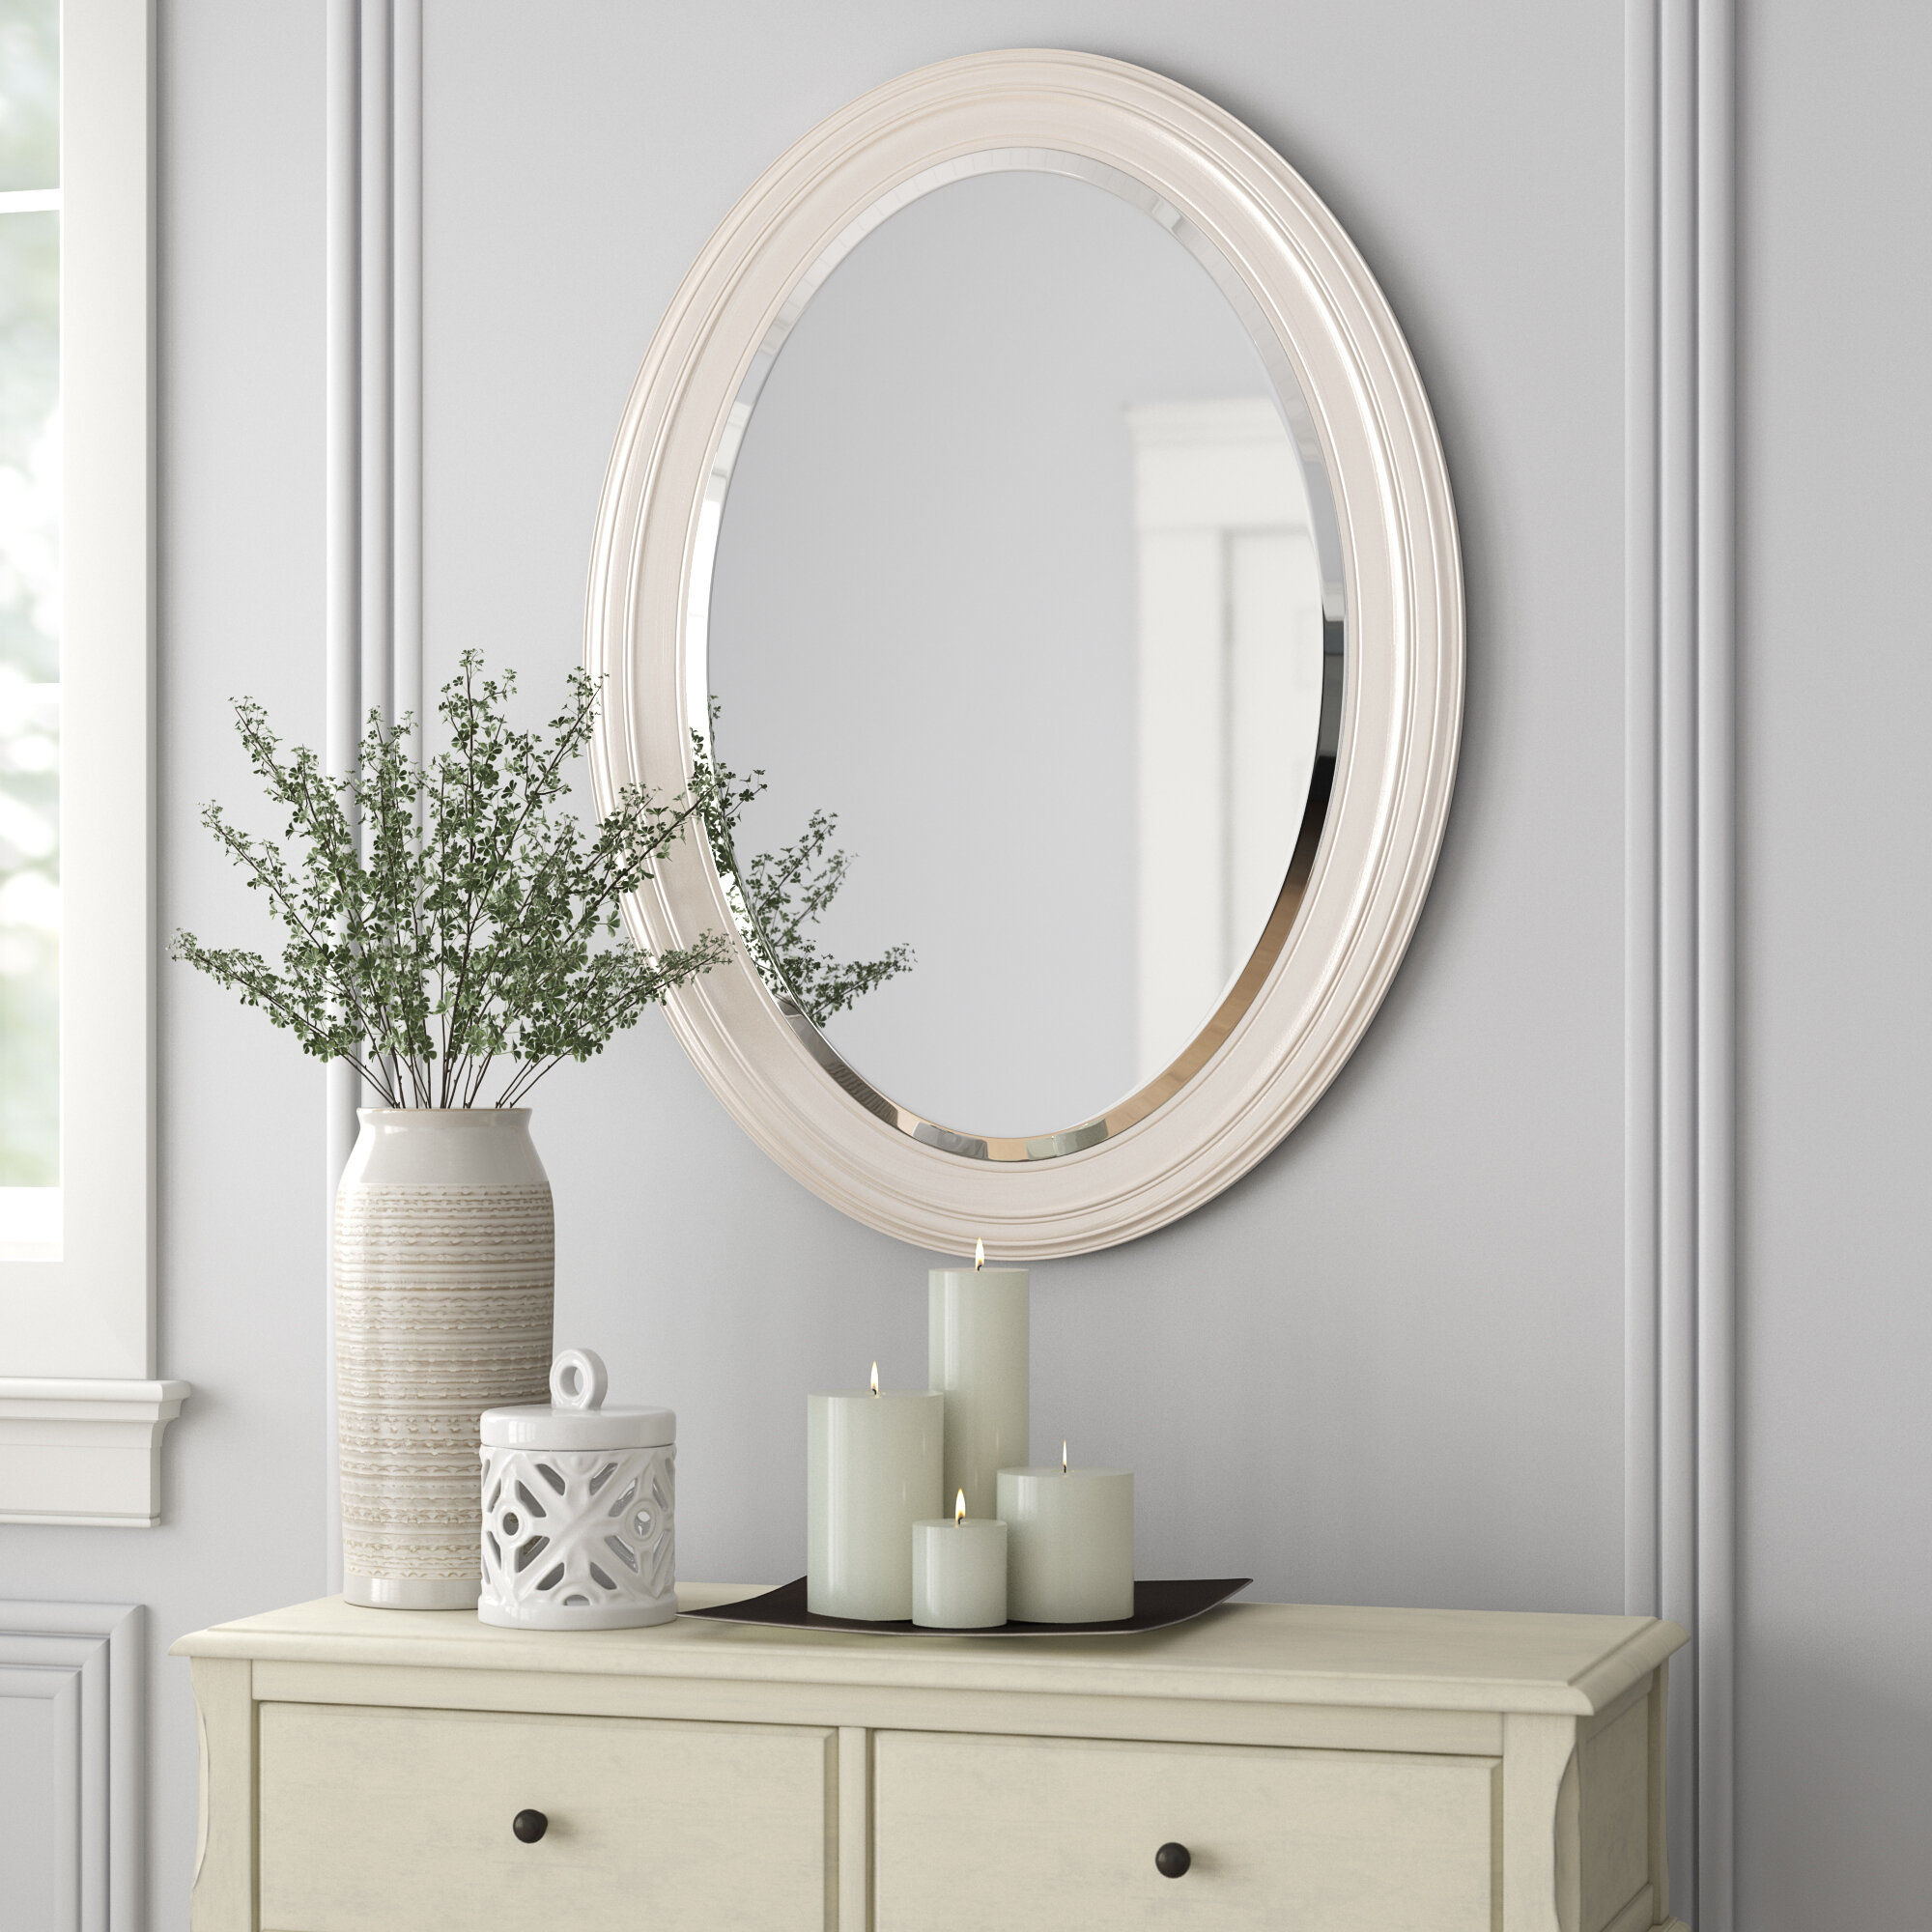 Pfister Oval Wood Wall Mirror In Burnes Oval Traditional Wall Mirrors (Image 16 of 20)